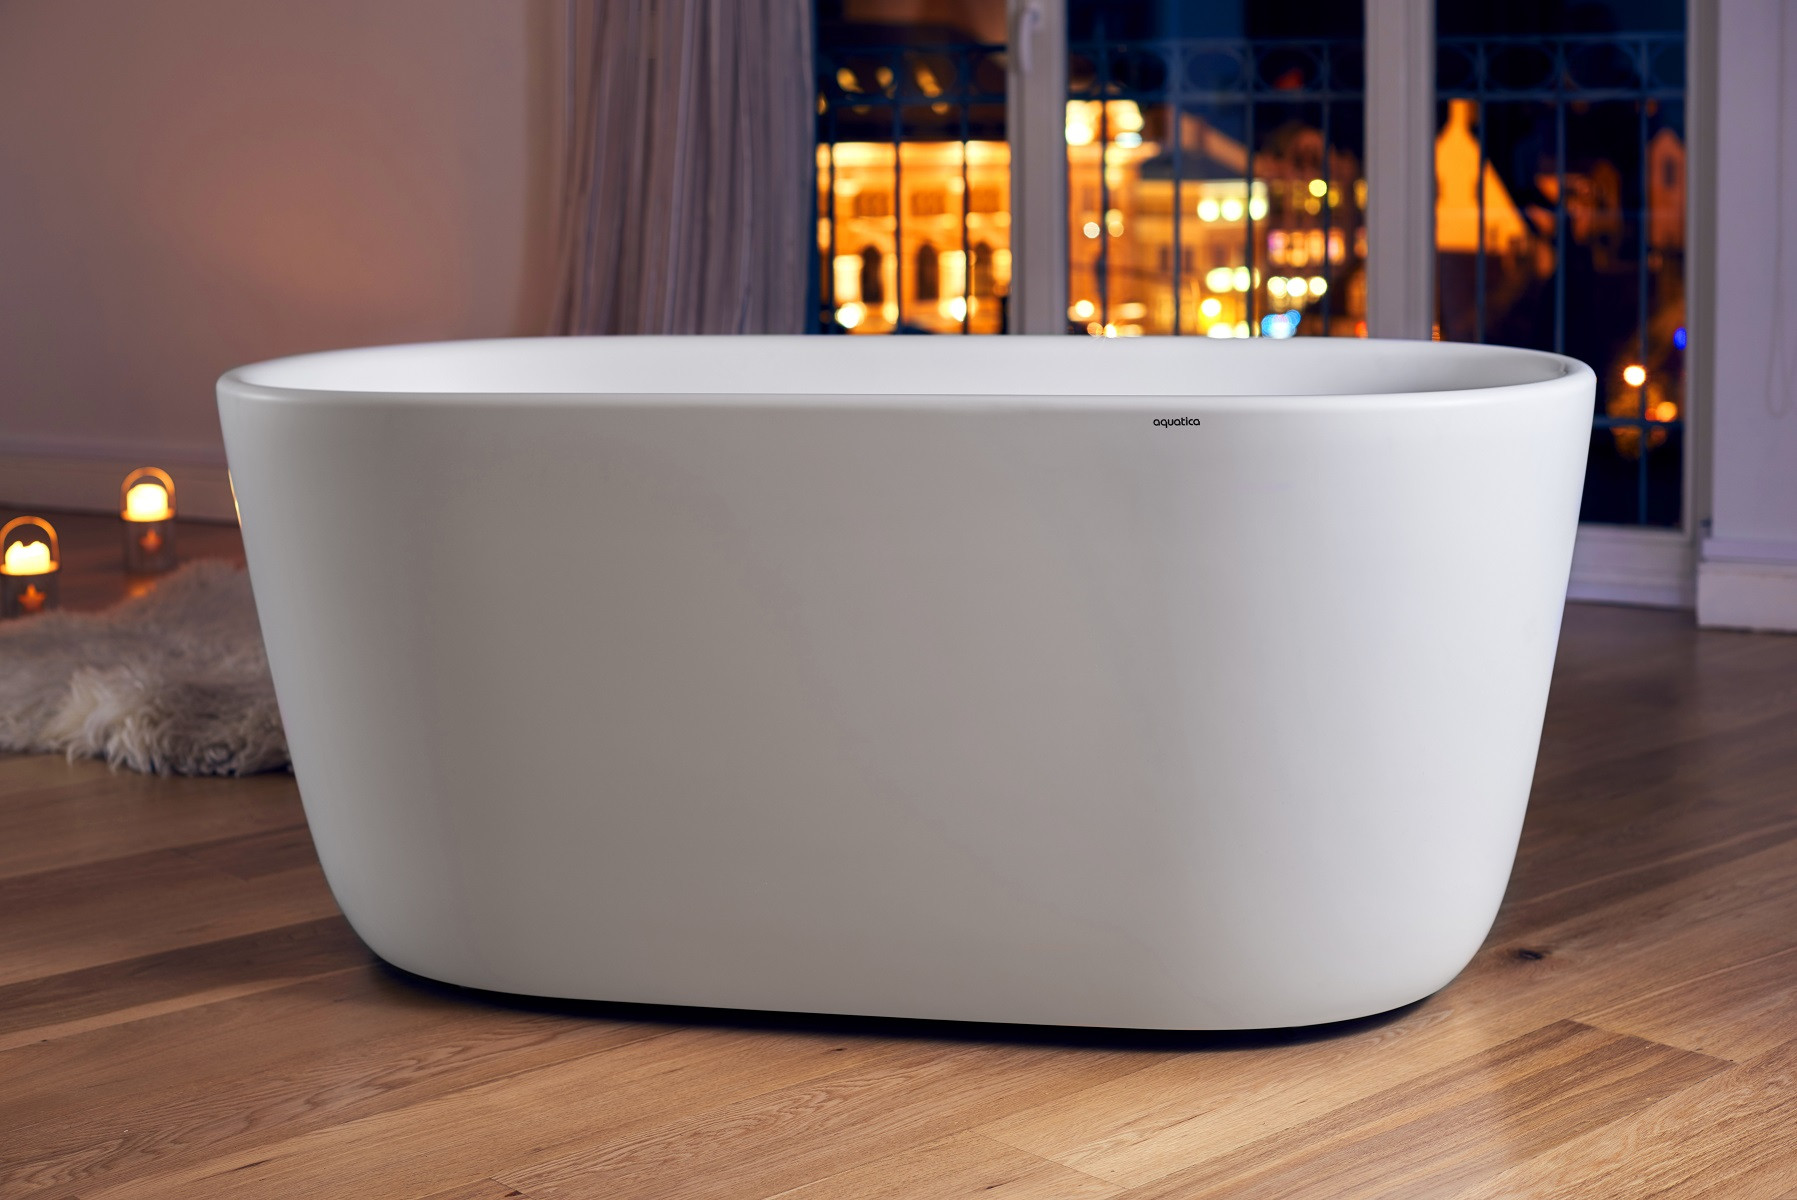 Aquatica PS602M-Mini-Wht Lullaby Freestanding Solid Surface Bathtub in White